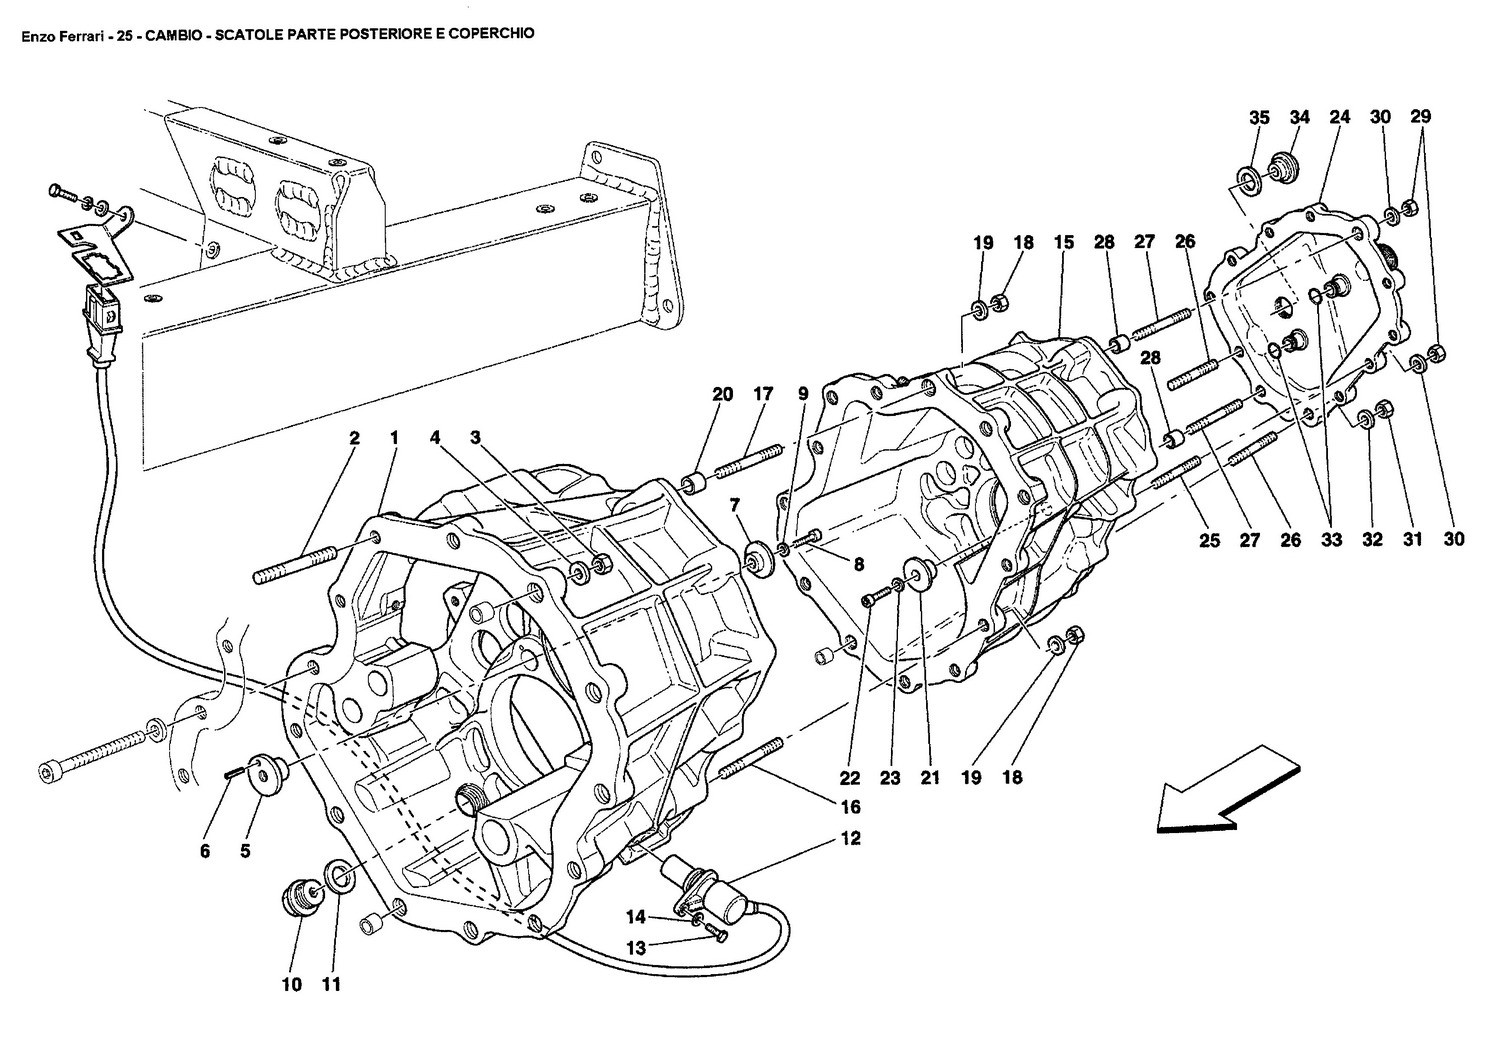 GEARBOX - REAR PART GEARBOXES HOUSING AND COVER